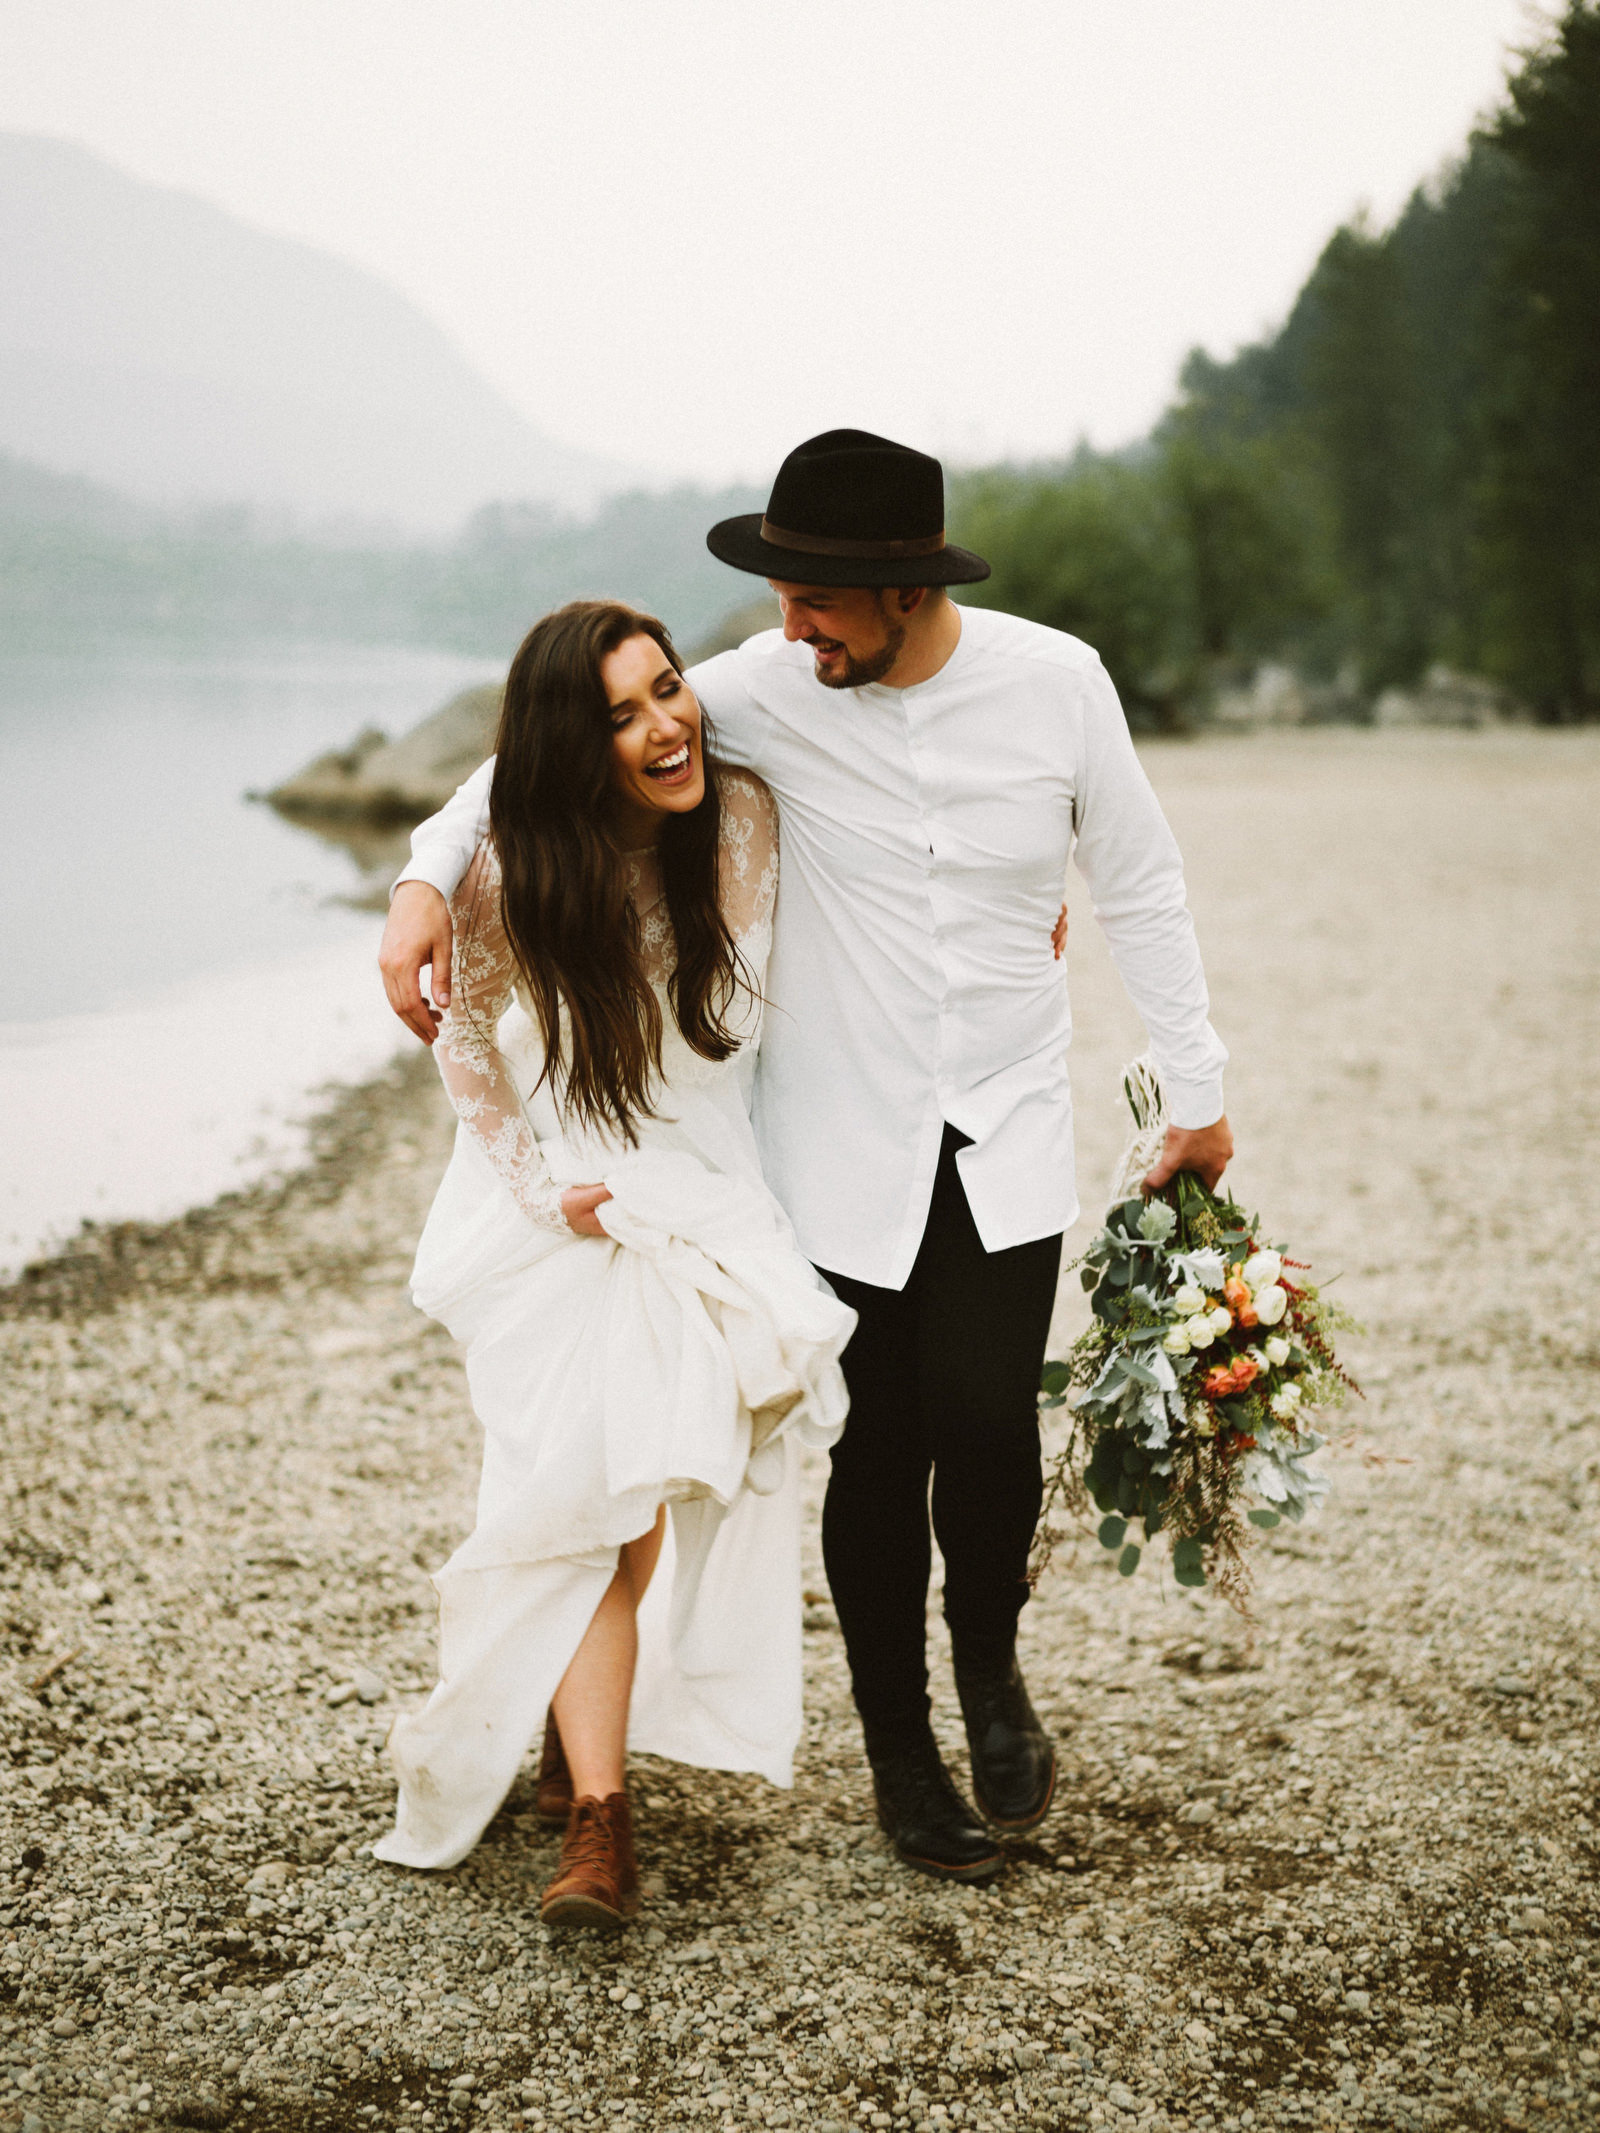 athena-and-camron-seattle-elopement-wedding-benj-haisch-rattlesnake-lake-christian-couple-goals84